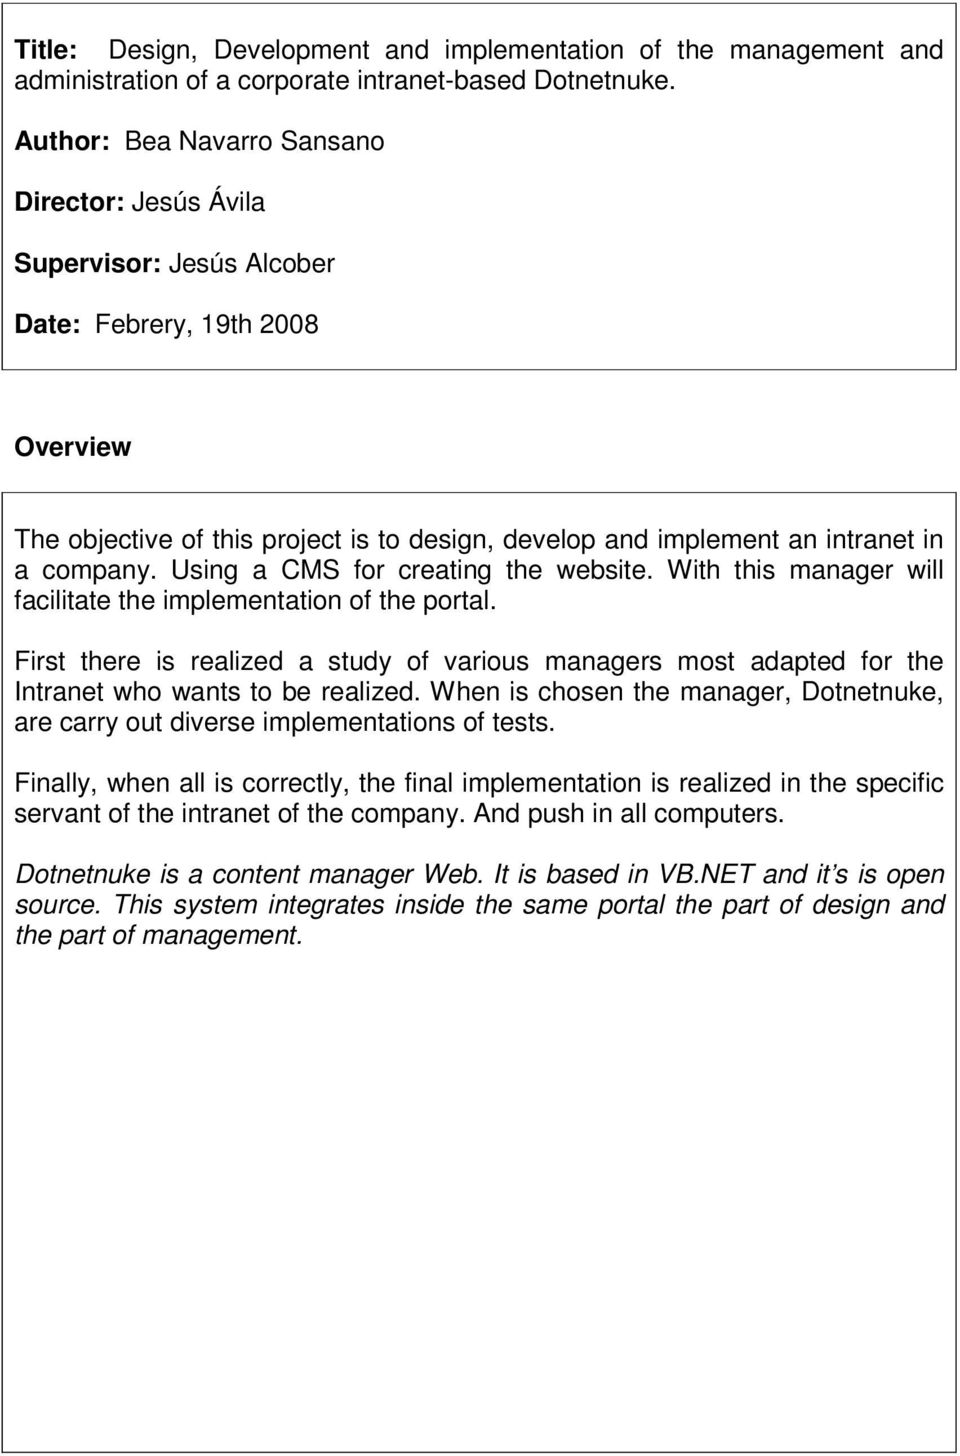 company. Using a CMS for creating the website. With this manager will facilitate the implementation of the portal.